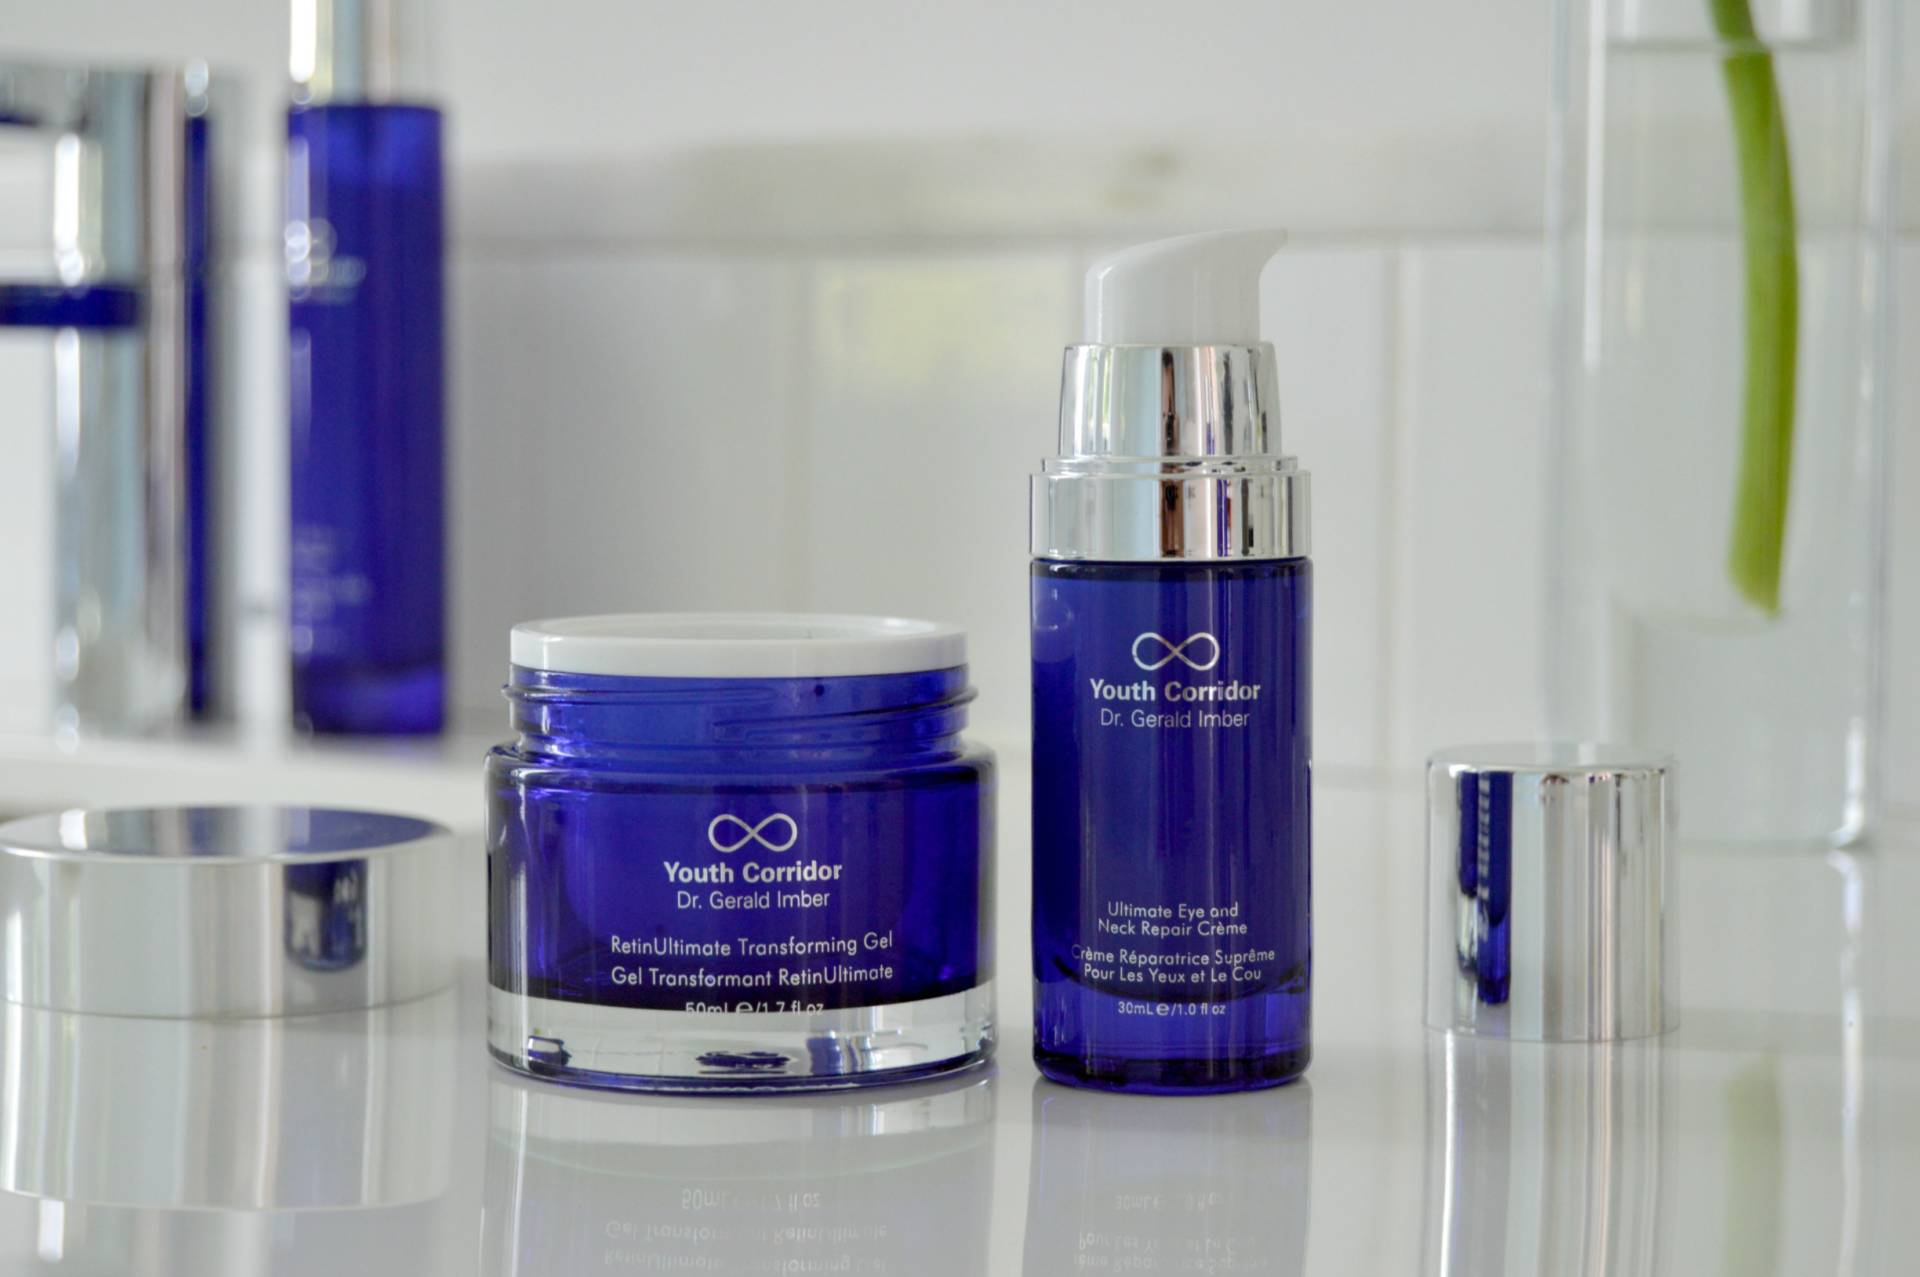 youth-corridor-by-dr-imber-skincare-review-net-a-porter